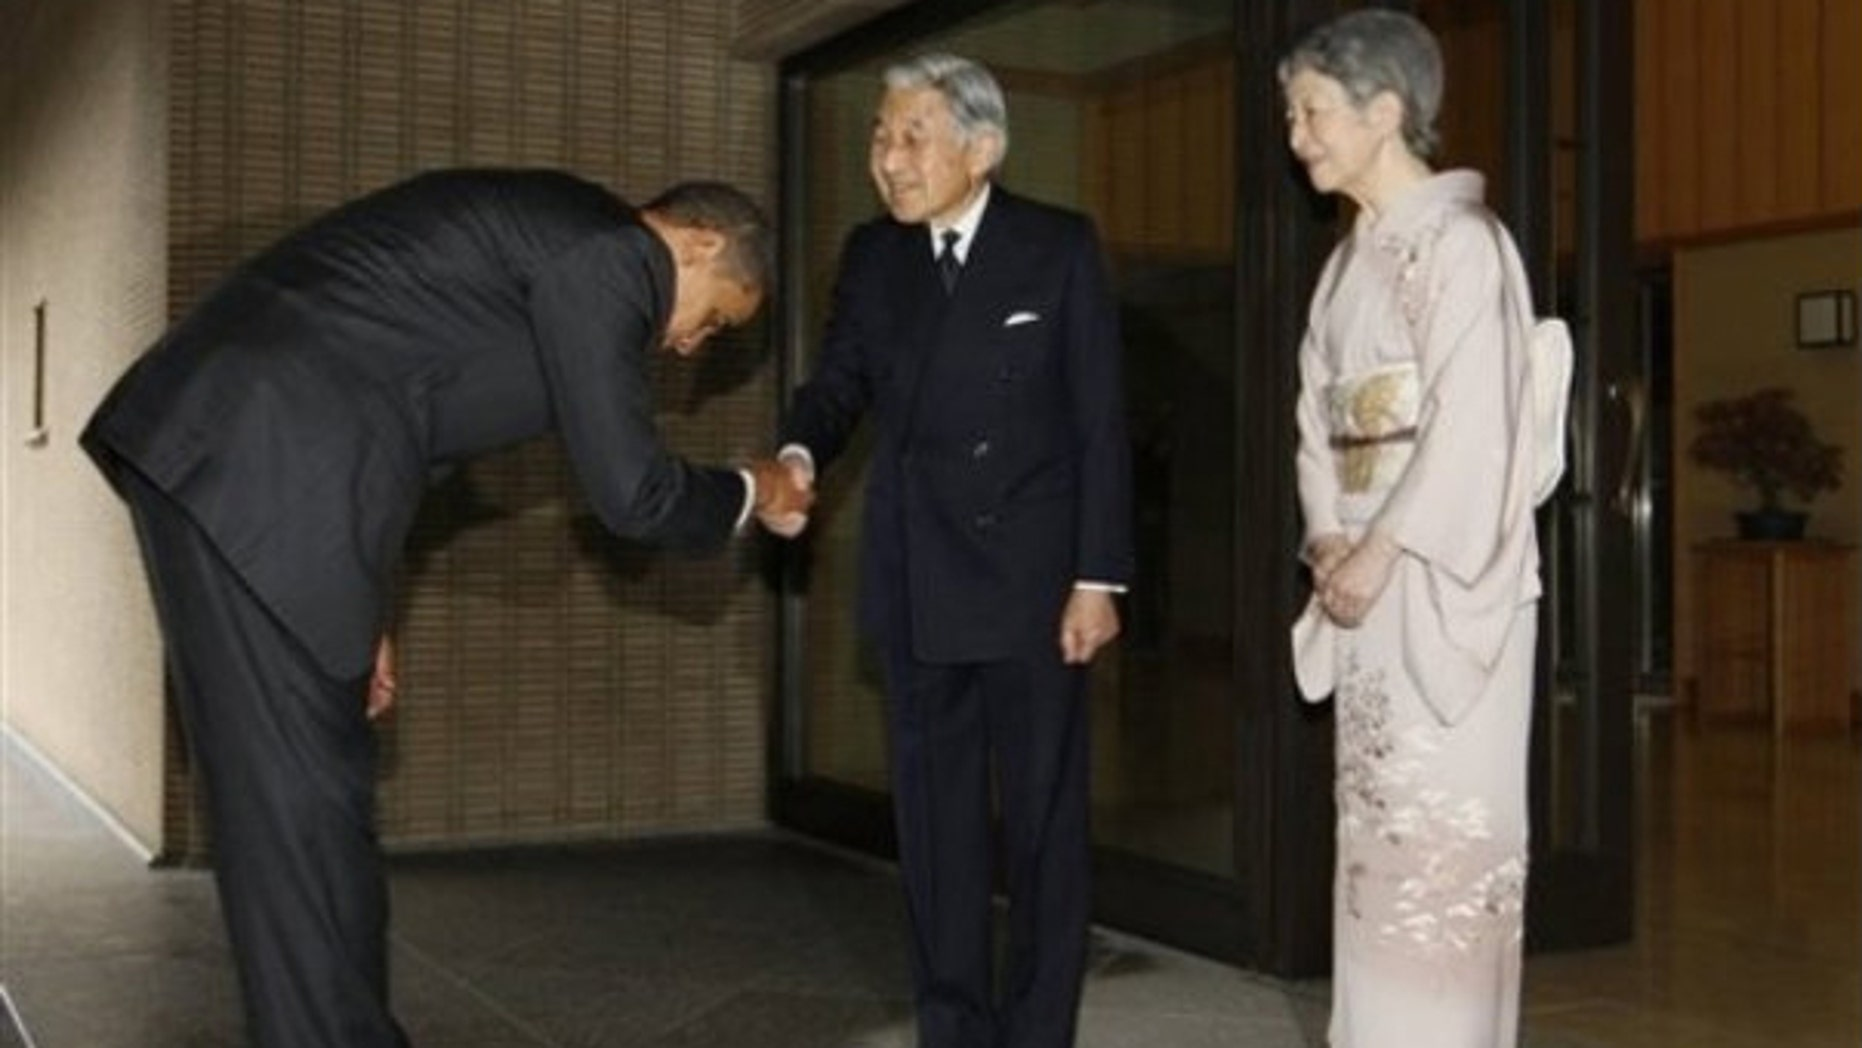 The president bows as he is greeted by Japanese Emperor Akihito and Empress Michiko as he arrives at the Imperial Palace in Tokyo (AP Photo)